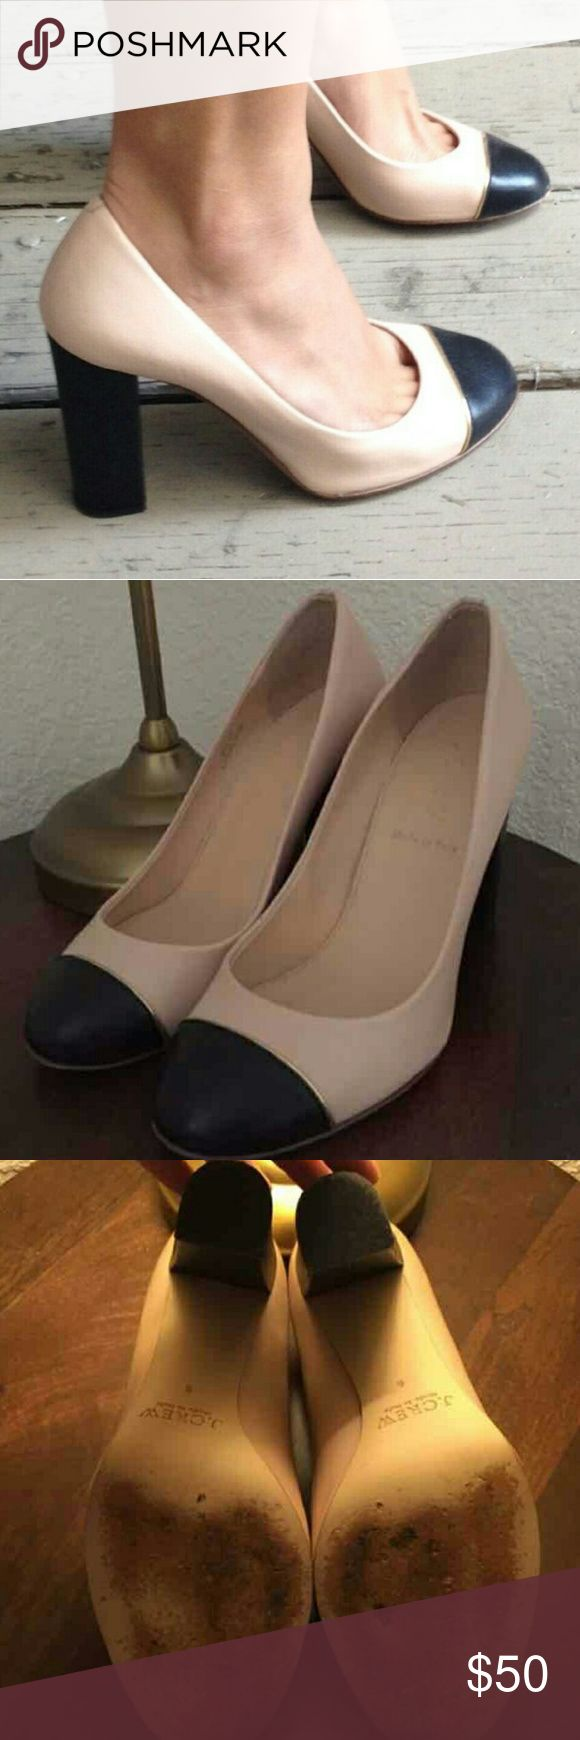 J. Crew Etta Pumps Gorgeous cream pumps with black cap toe and gold piping. Chunky heel lends to a more comfortable stride. Perfect condition with minor wear on the soles. J. Crew Shoes Heels